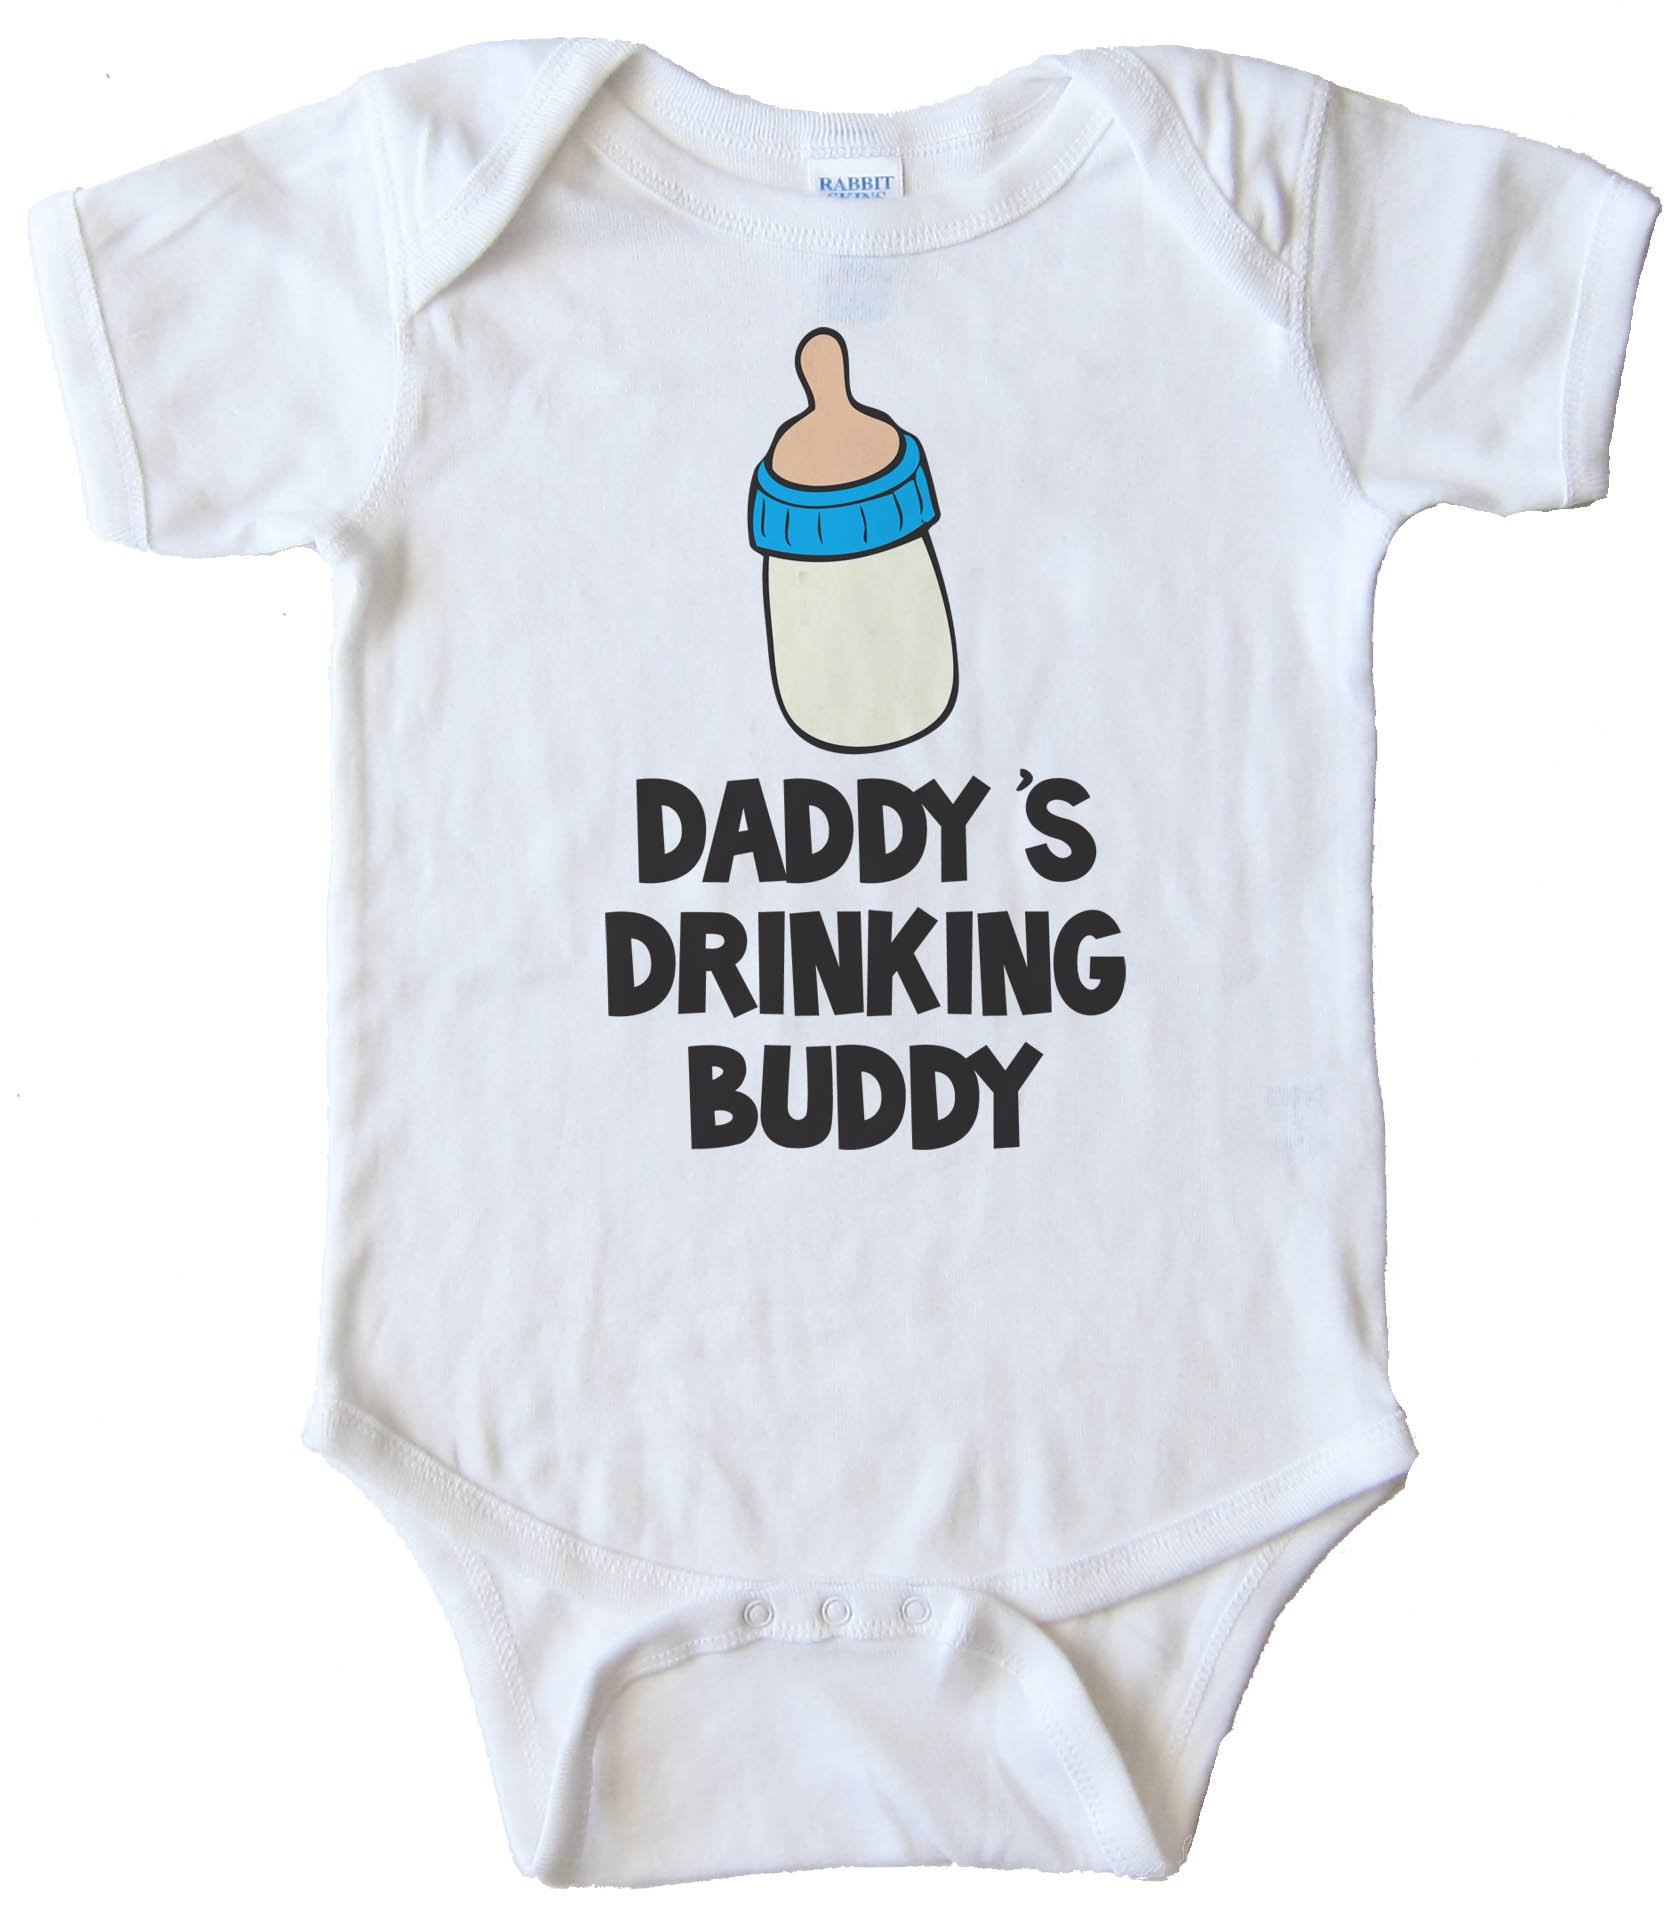 Daddy'S Drinking Buddy - Baby Bodysuit